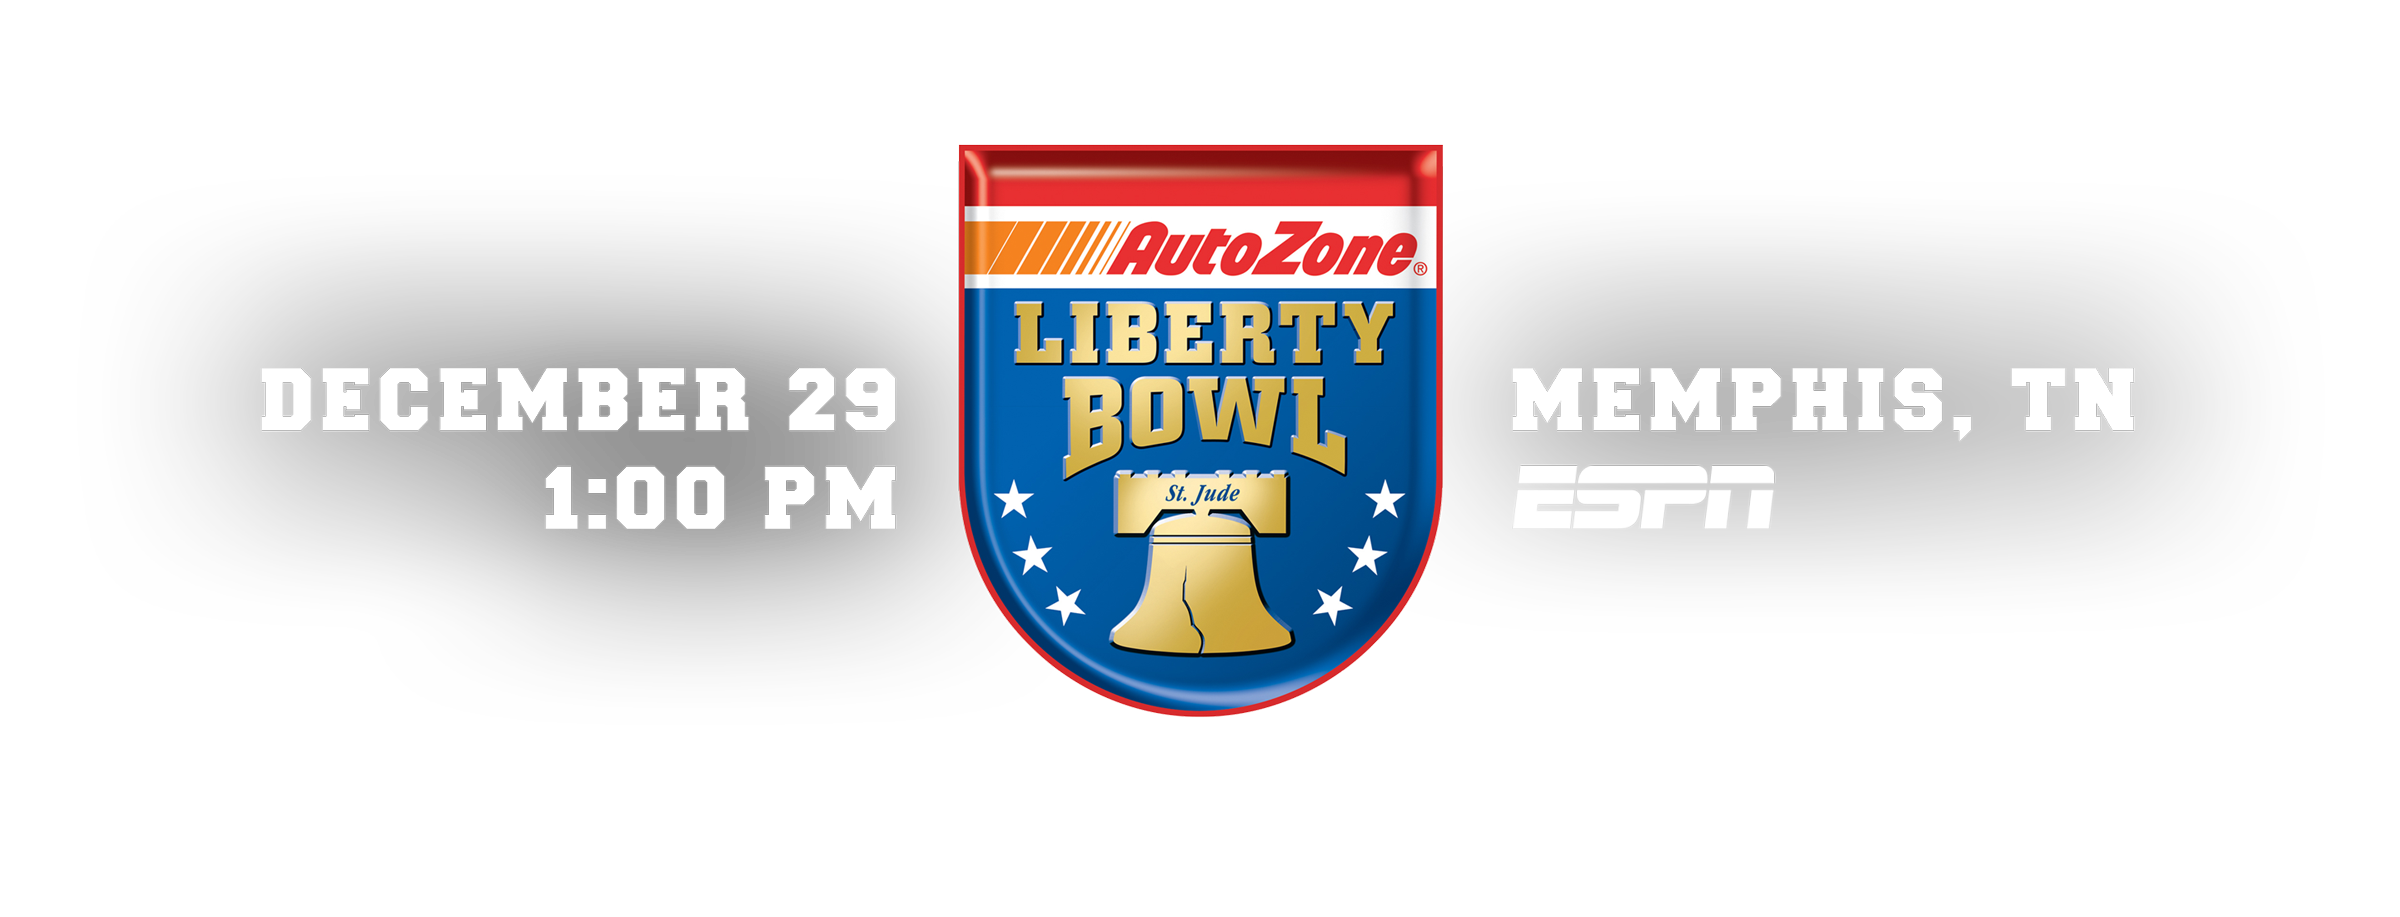 Liberty Bowl in Memphis, TN - December 29, 1:00 PM on ESPN